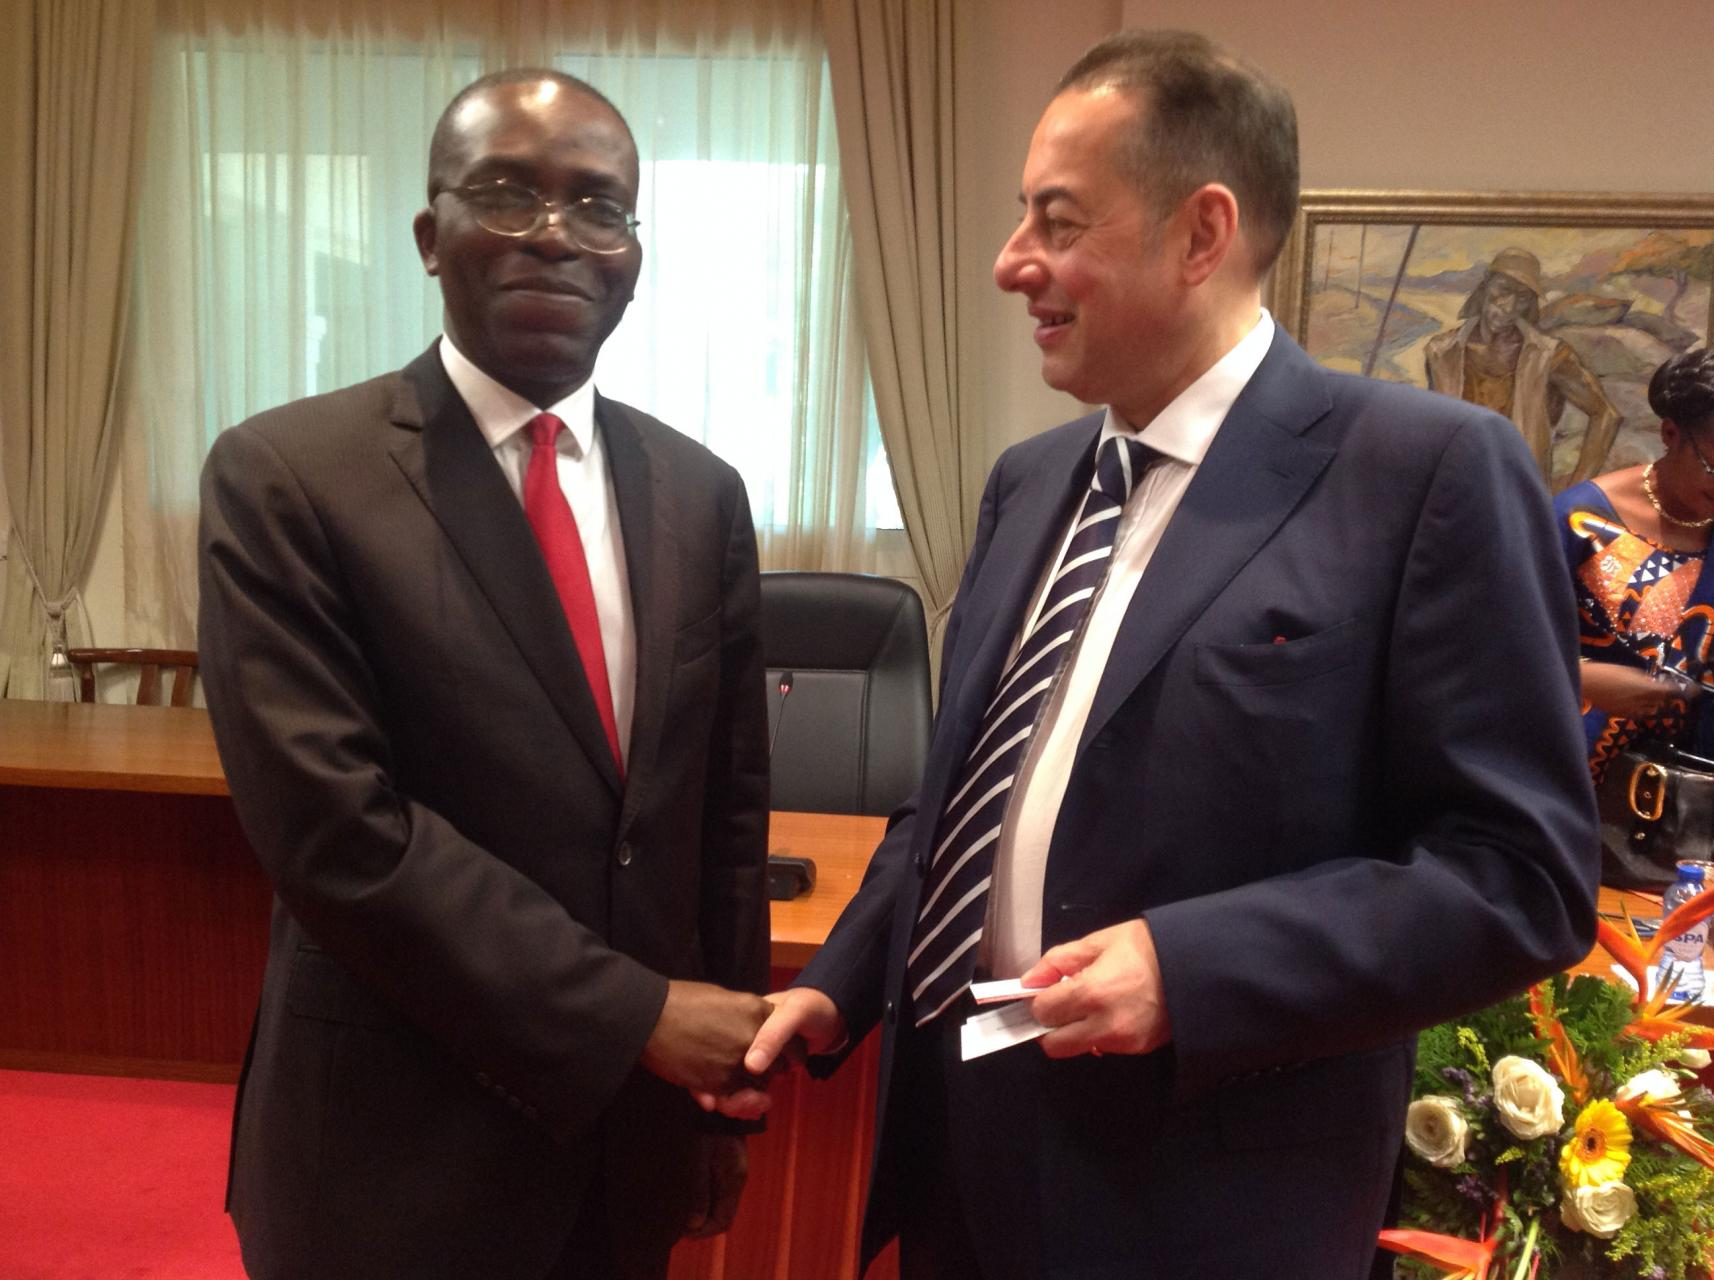 Gianni Pittella with with the prime minister of the RDC M. Augustin Matata Ponyo